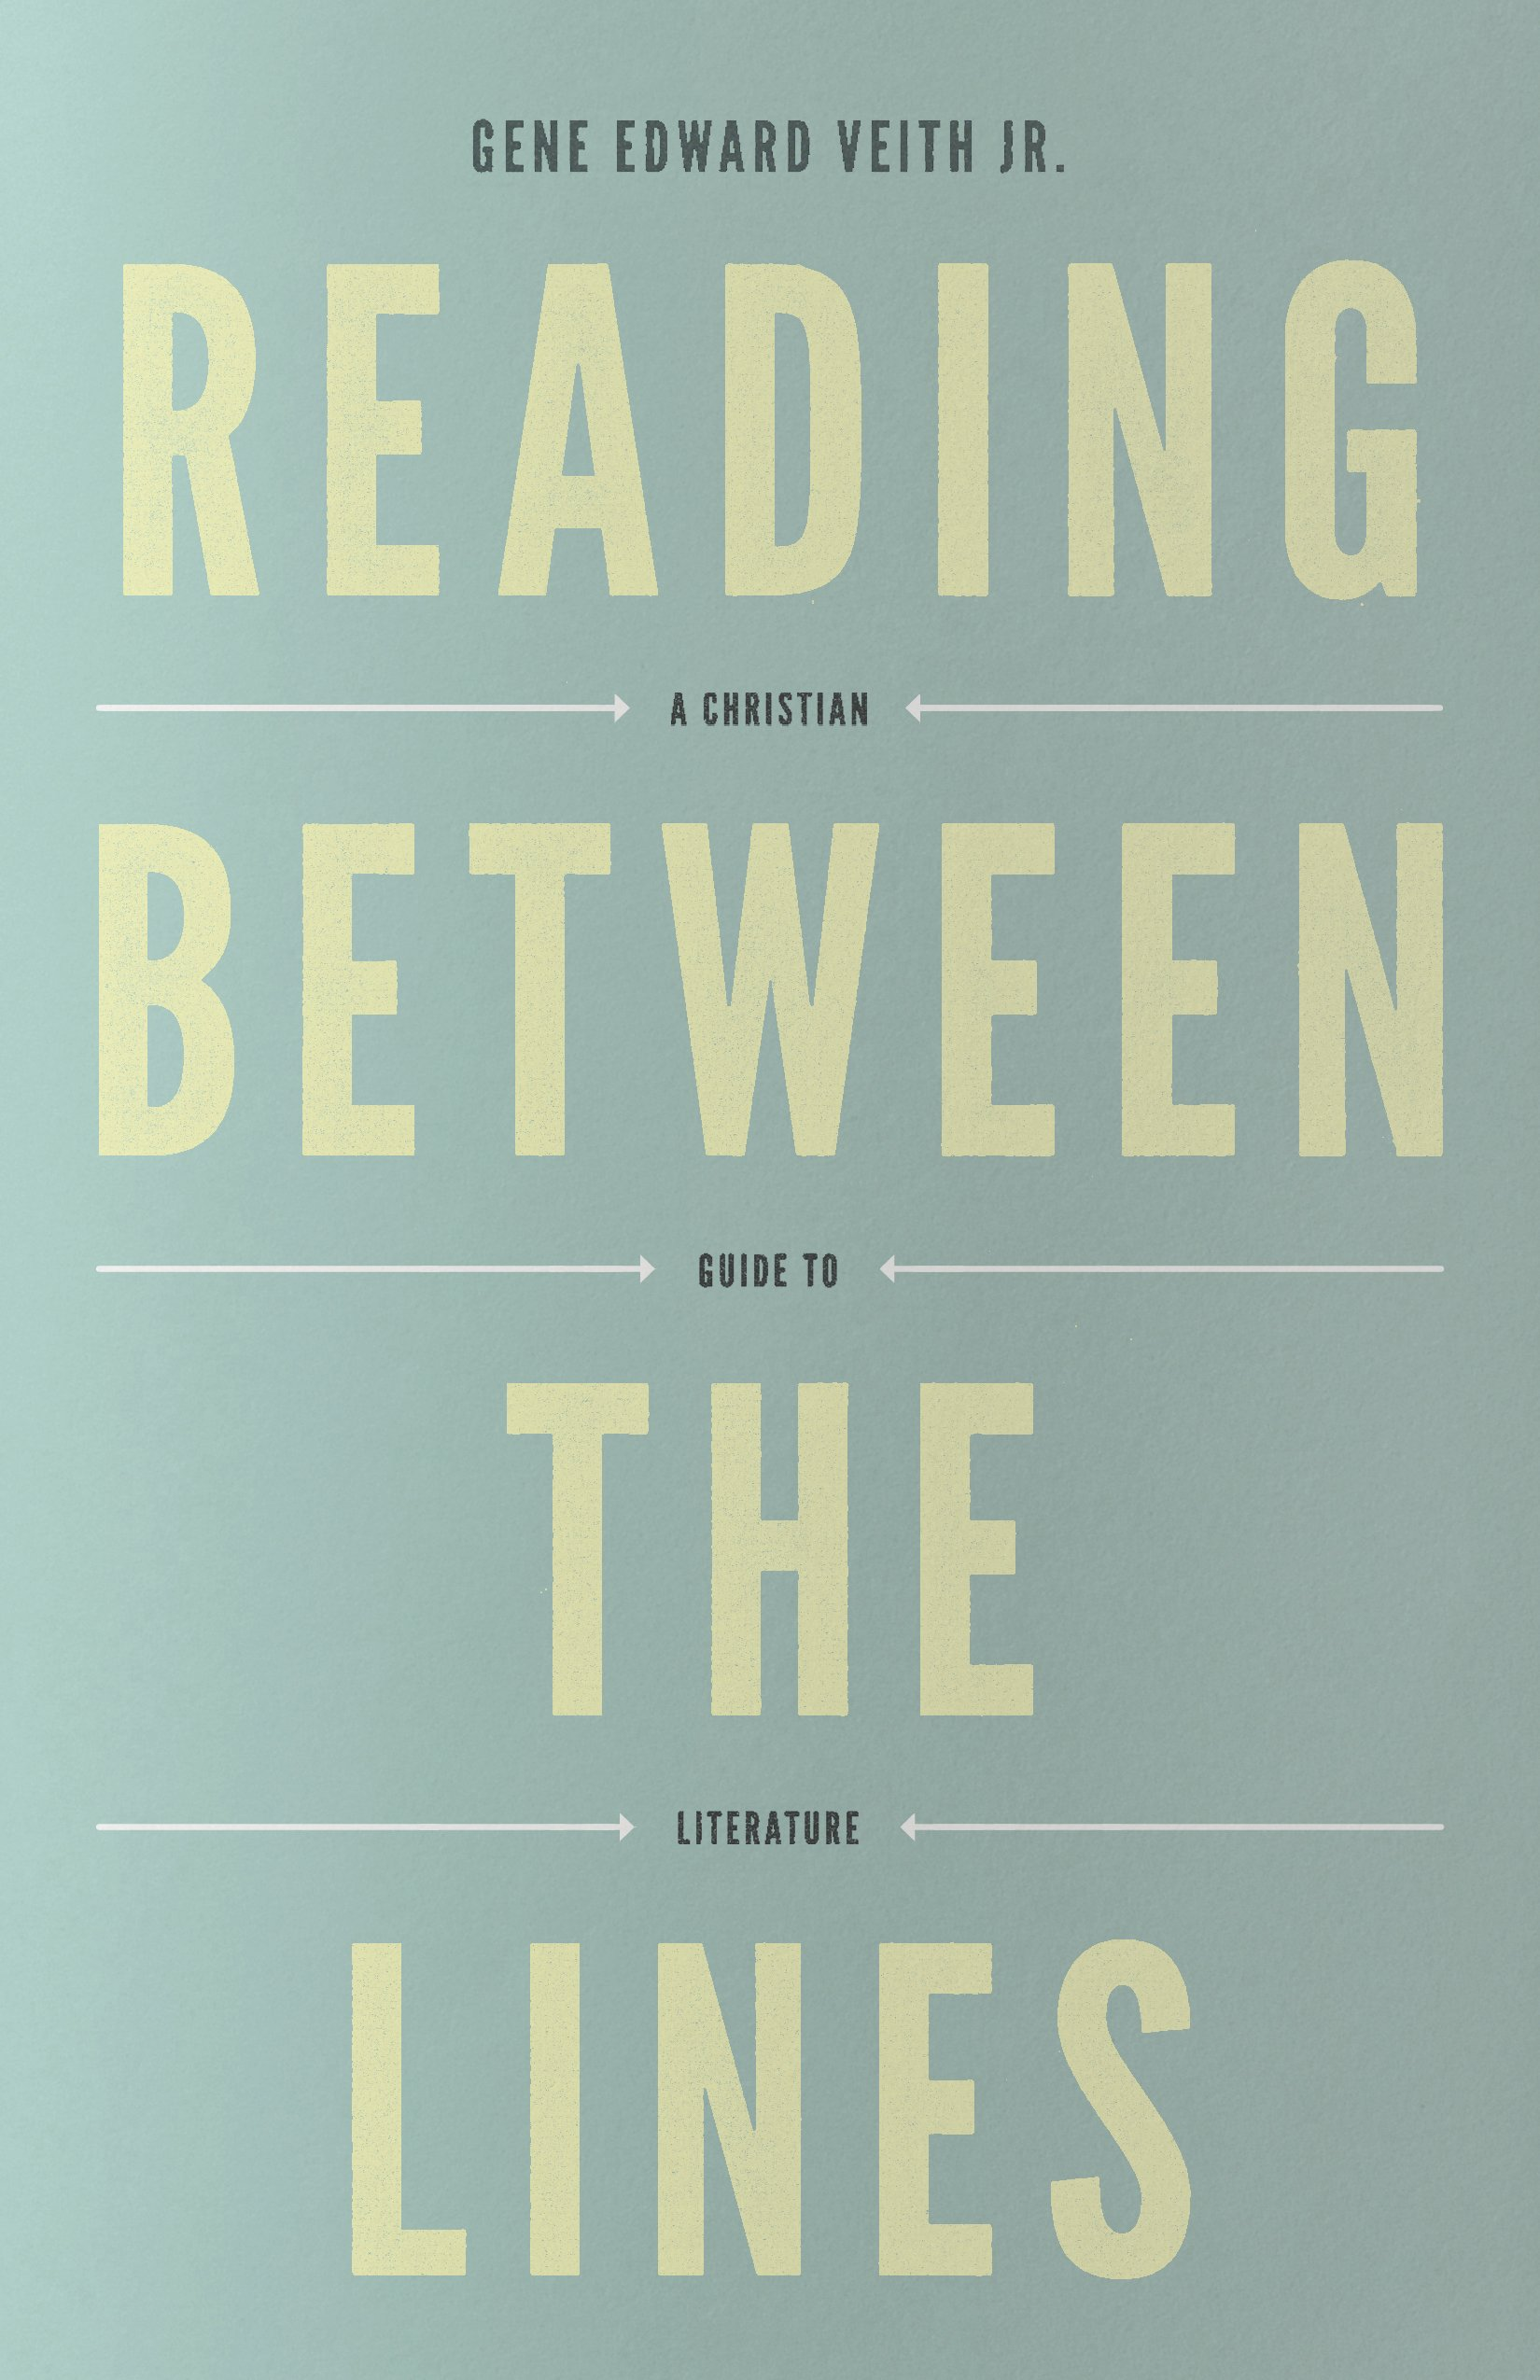 Reading Between the Lines (Redesign): A Christian Guide to Literature  (Turning Point